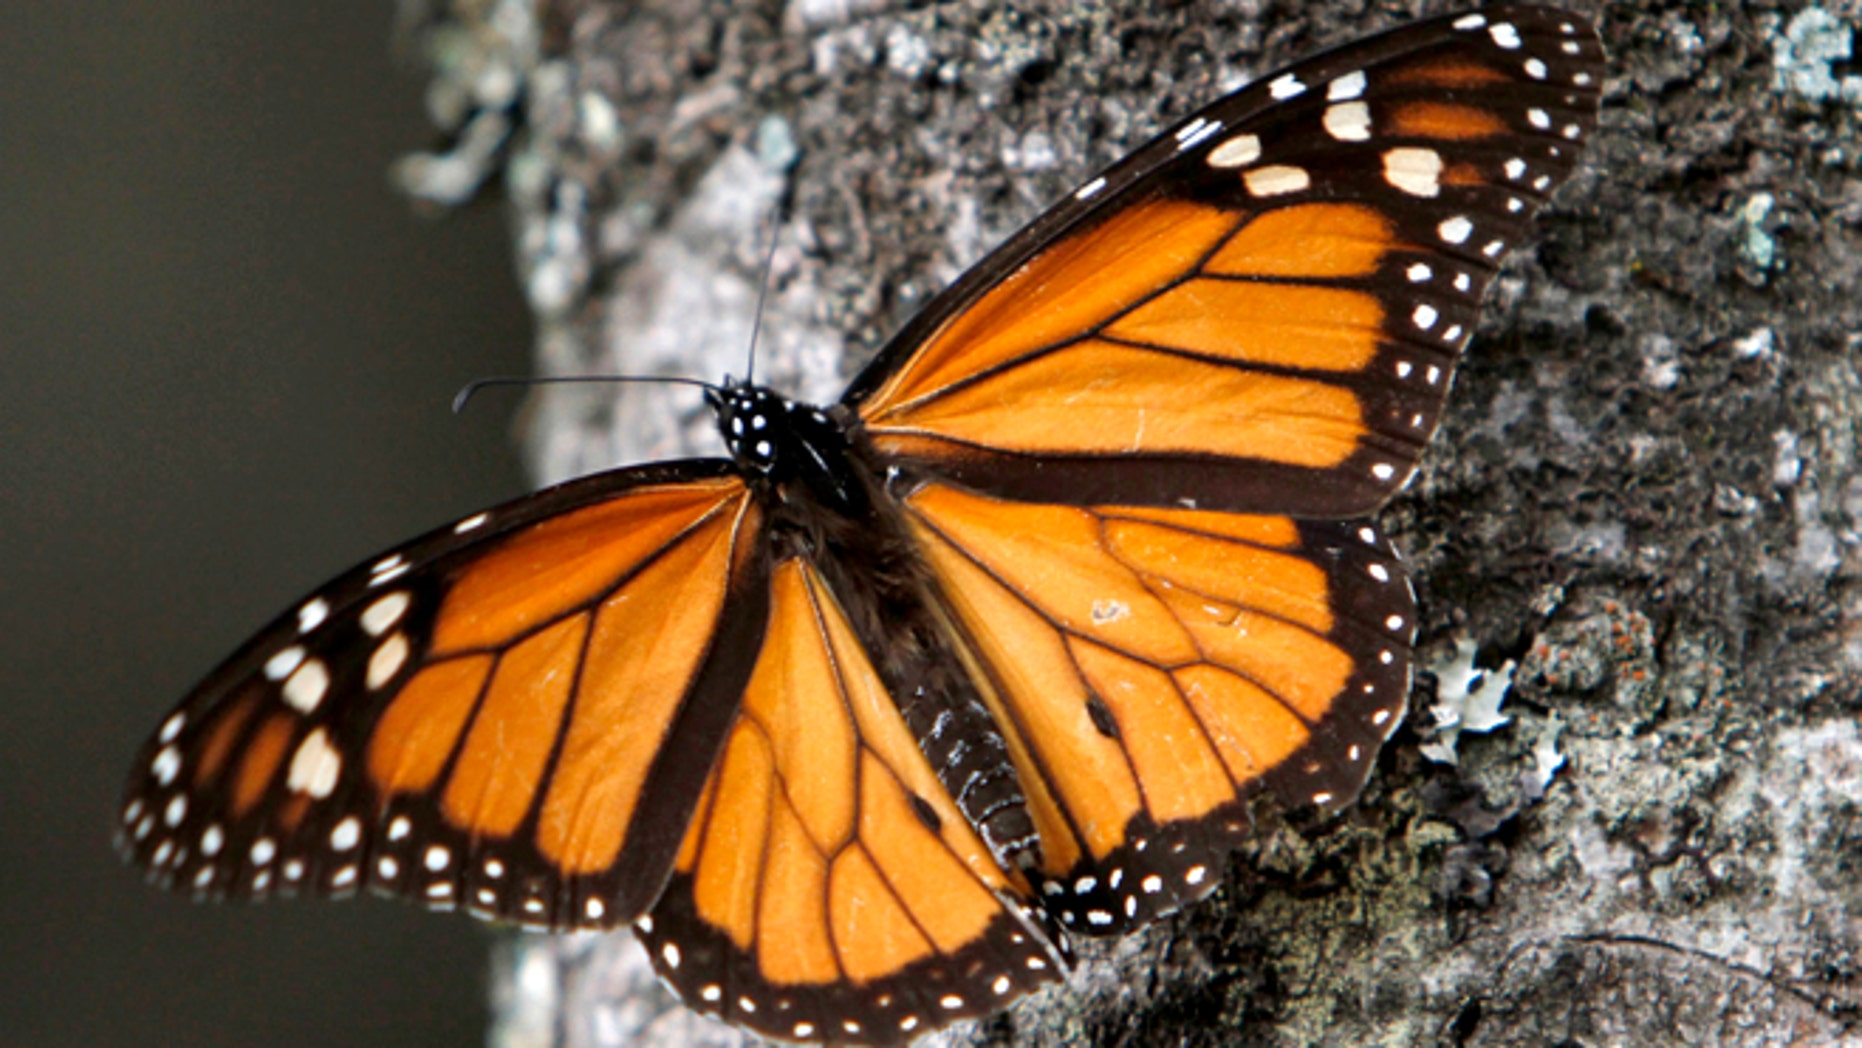 FILE - In this Dec. 9, 2011 file photo a Monarch butterfly sits on a tree trunk at the Sierra Chincua Sanctuary in the mountains of Mexico's Michoacan state. A new study of the Monarch butterflies' winter nesting grounds in central Mexico shows that small-scale logging is more extensive than previously thought, and may be contributing to the threats facing the Monarch's singular migration pattern, according to a new study co-authored by Omar Vidal, the head of Mexico's chapter of the World Wildlife Fund. (AP Photo/Marco Ugarte, File)